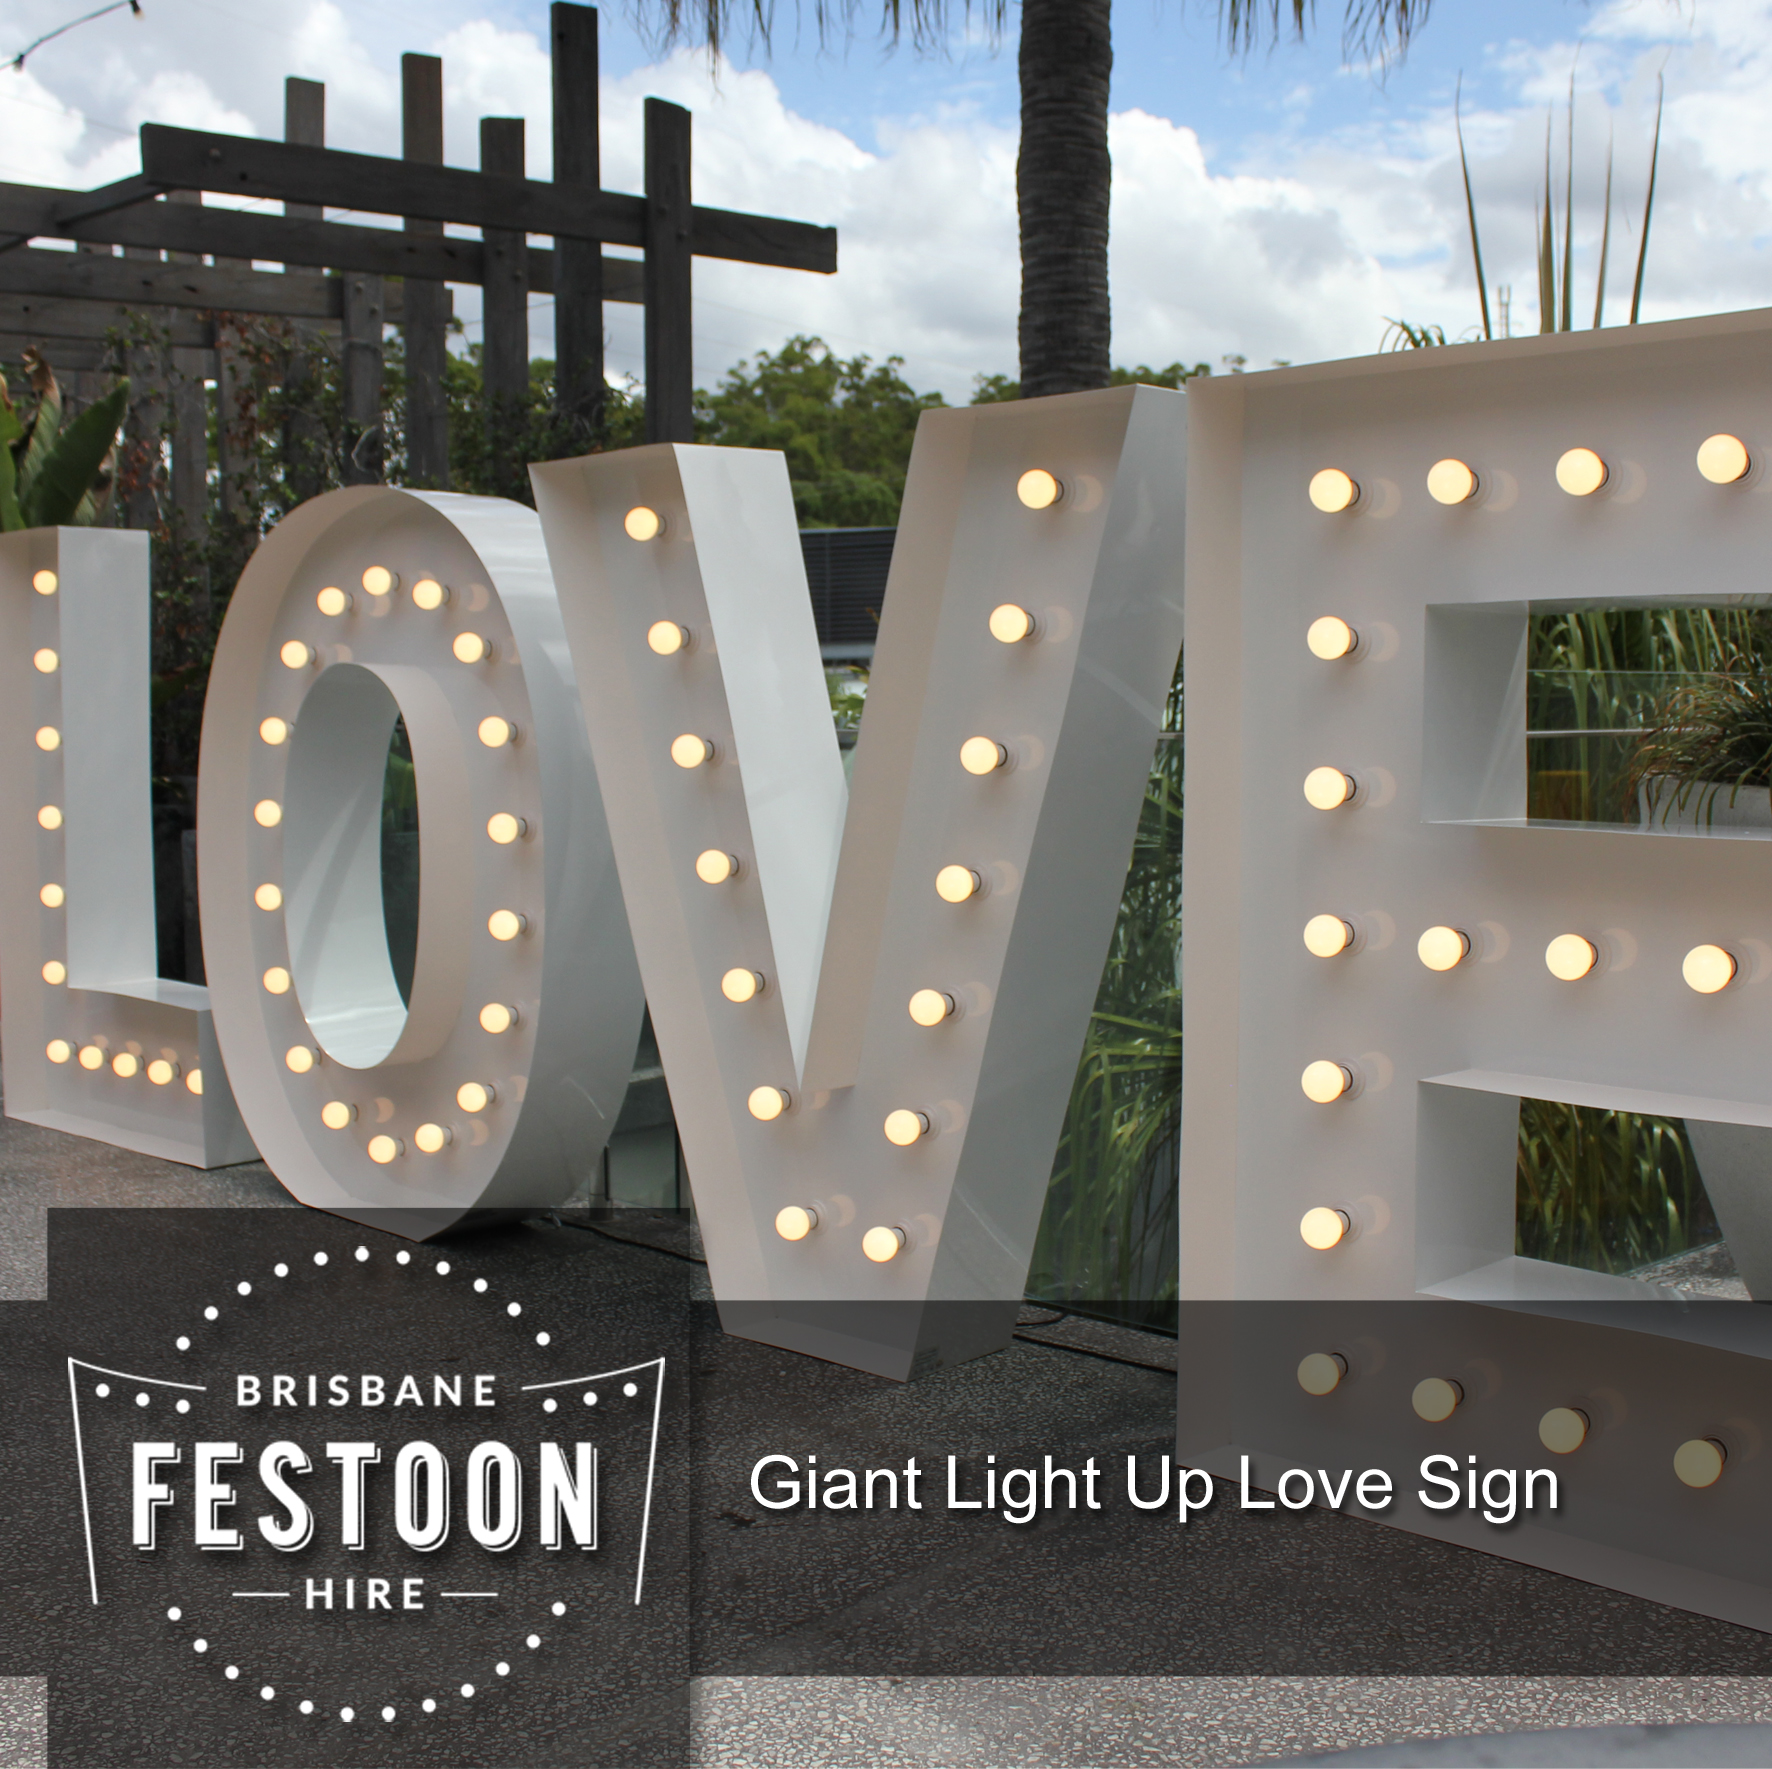 Brisbane Festoon Hire - Giant Light Up Love Sign 1.jpg